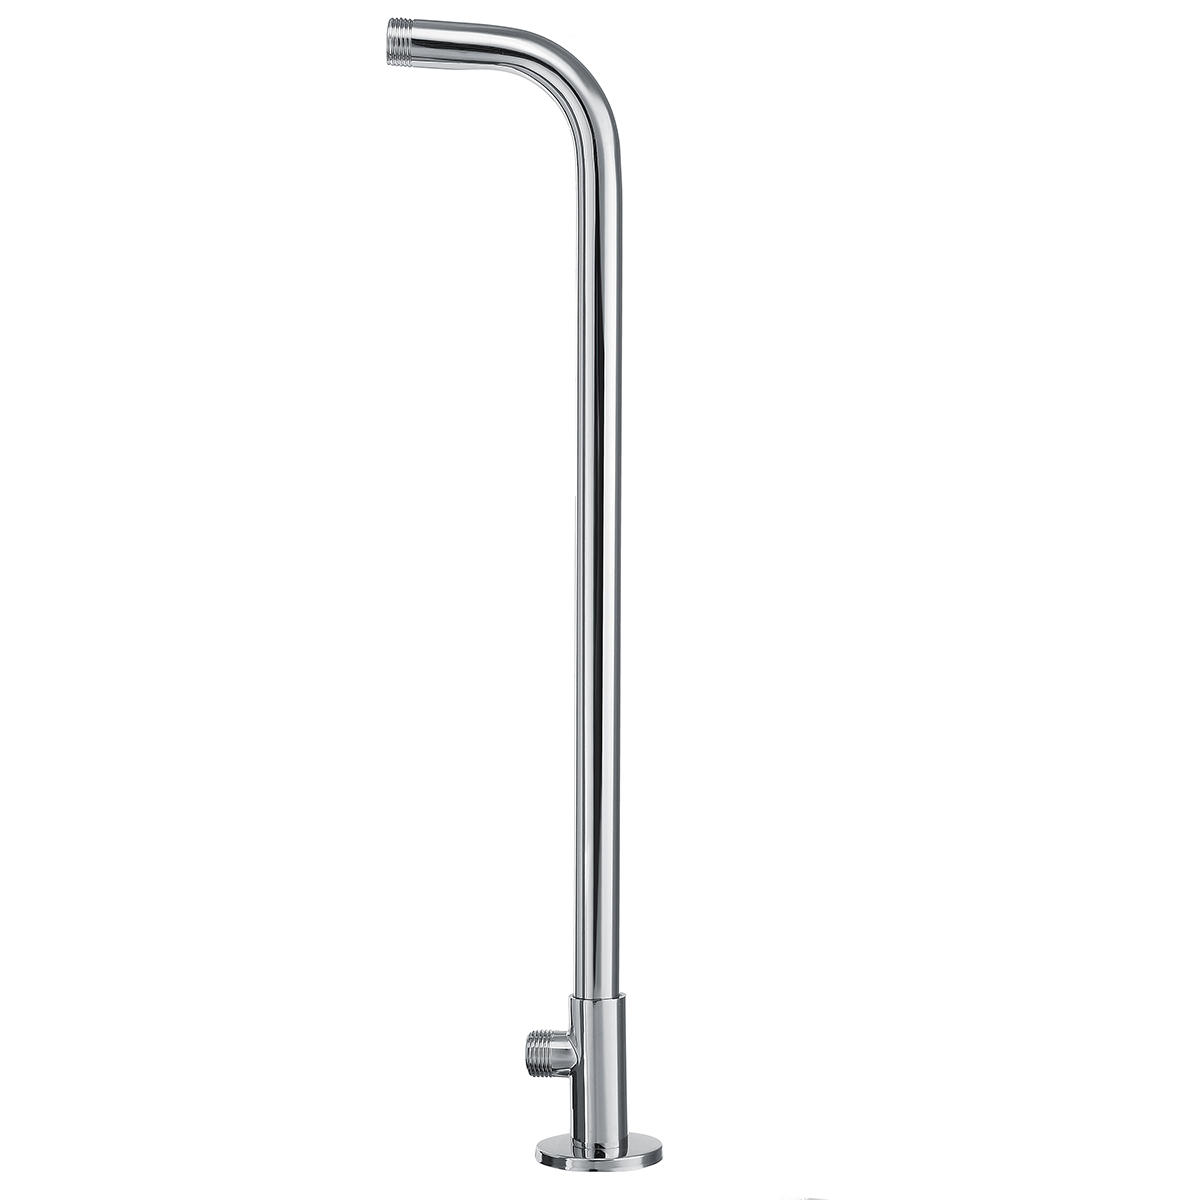 49cm Stainless Steel Wall Shower Head Extension Pipe Long Arm